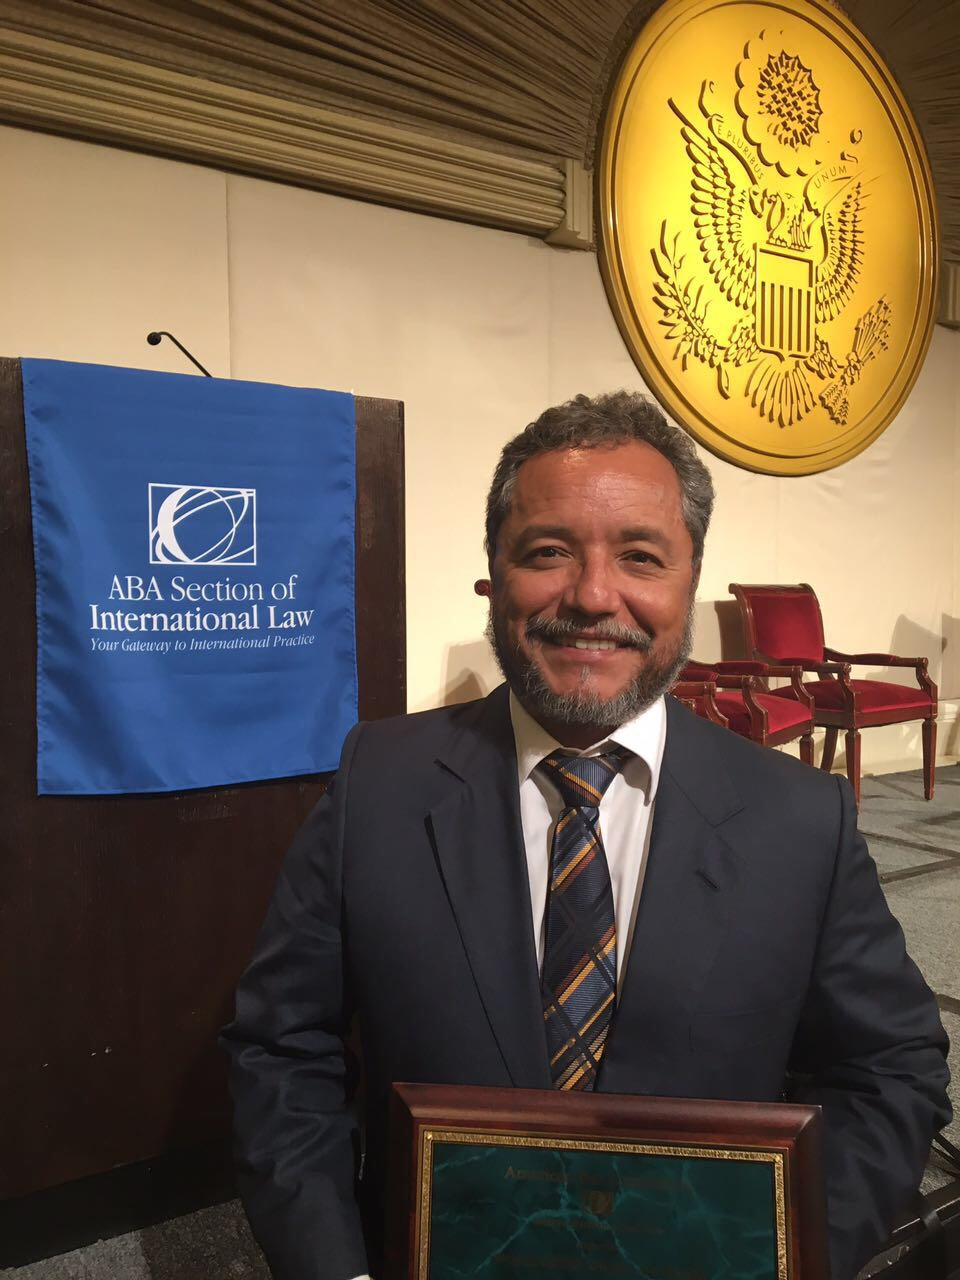 """World Order Under Law Award"" - Embajador Ronalth Ochaeta